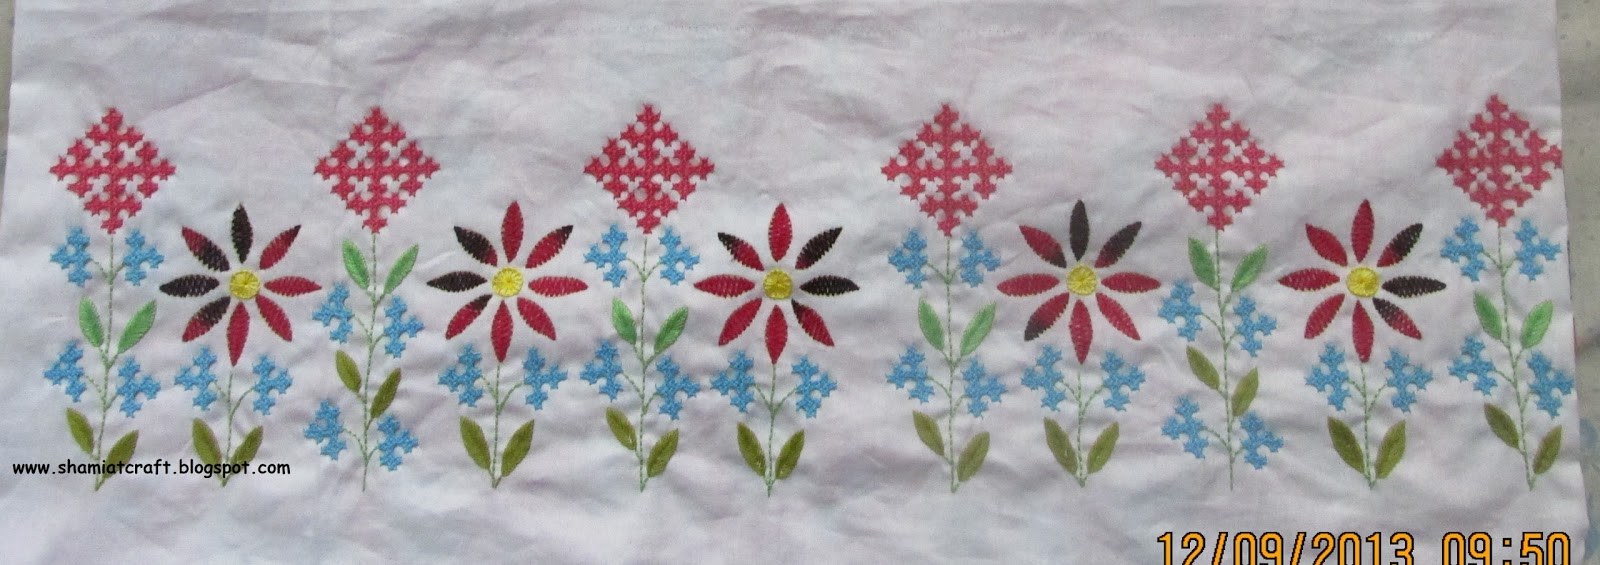 Embroidery work border makaroka